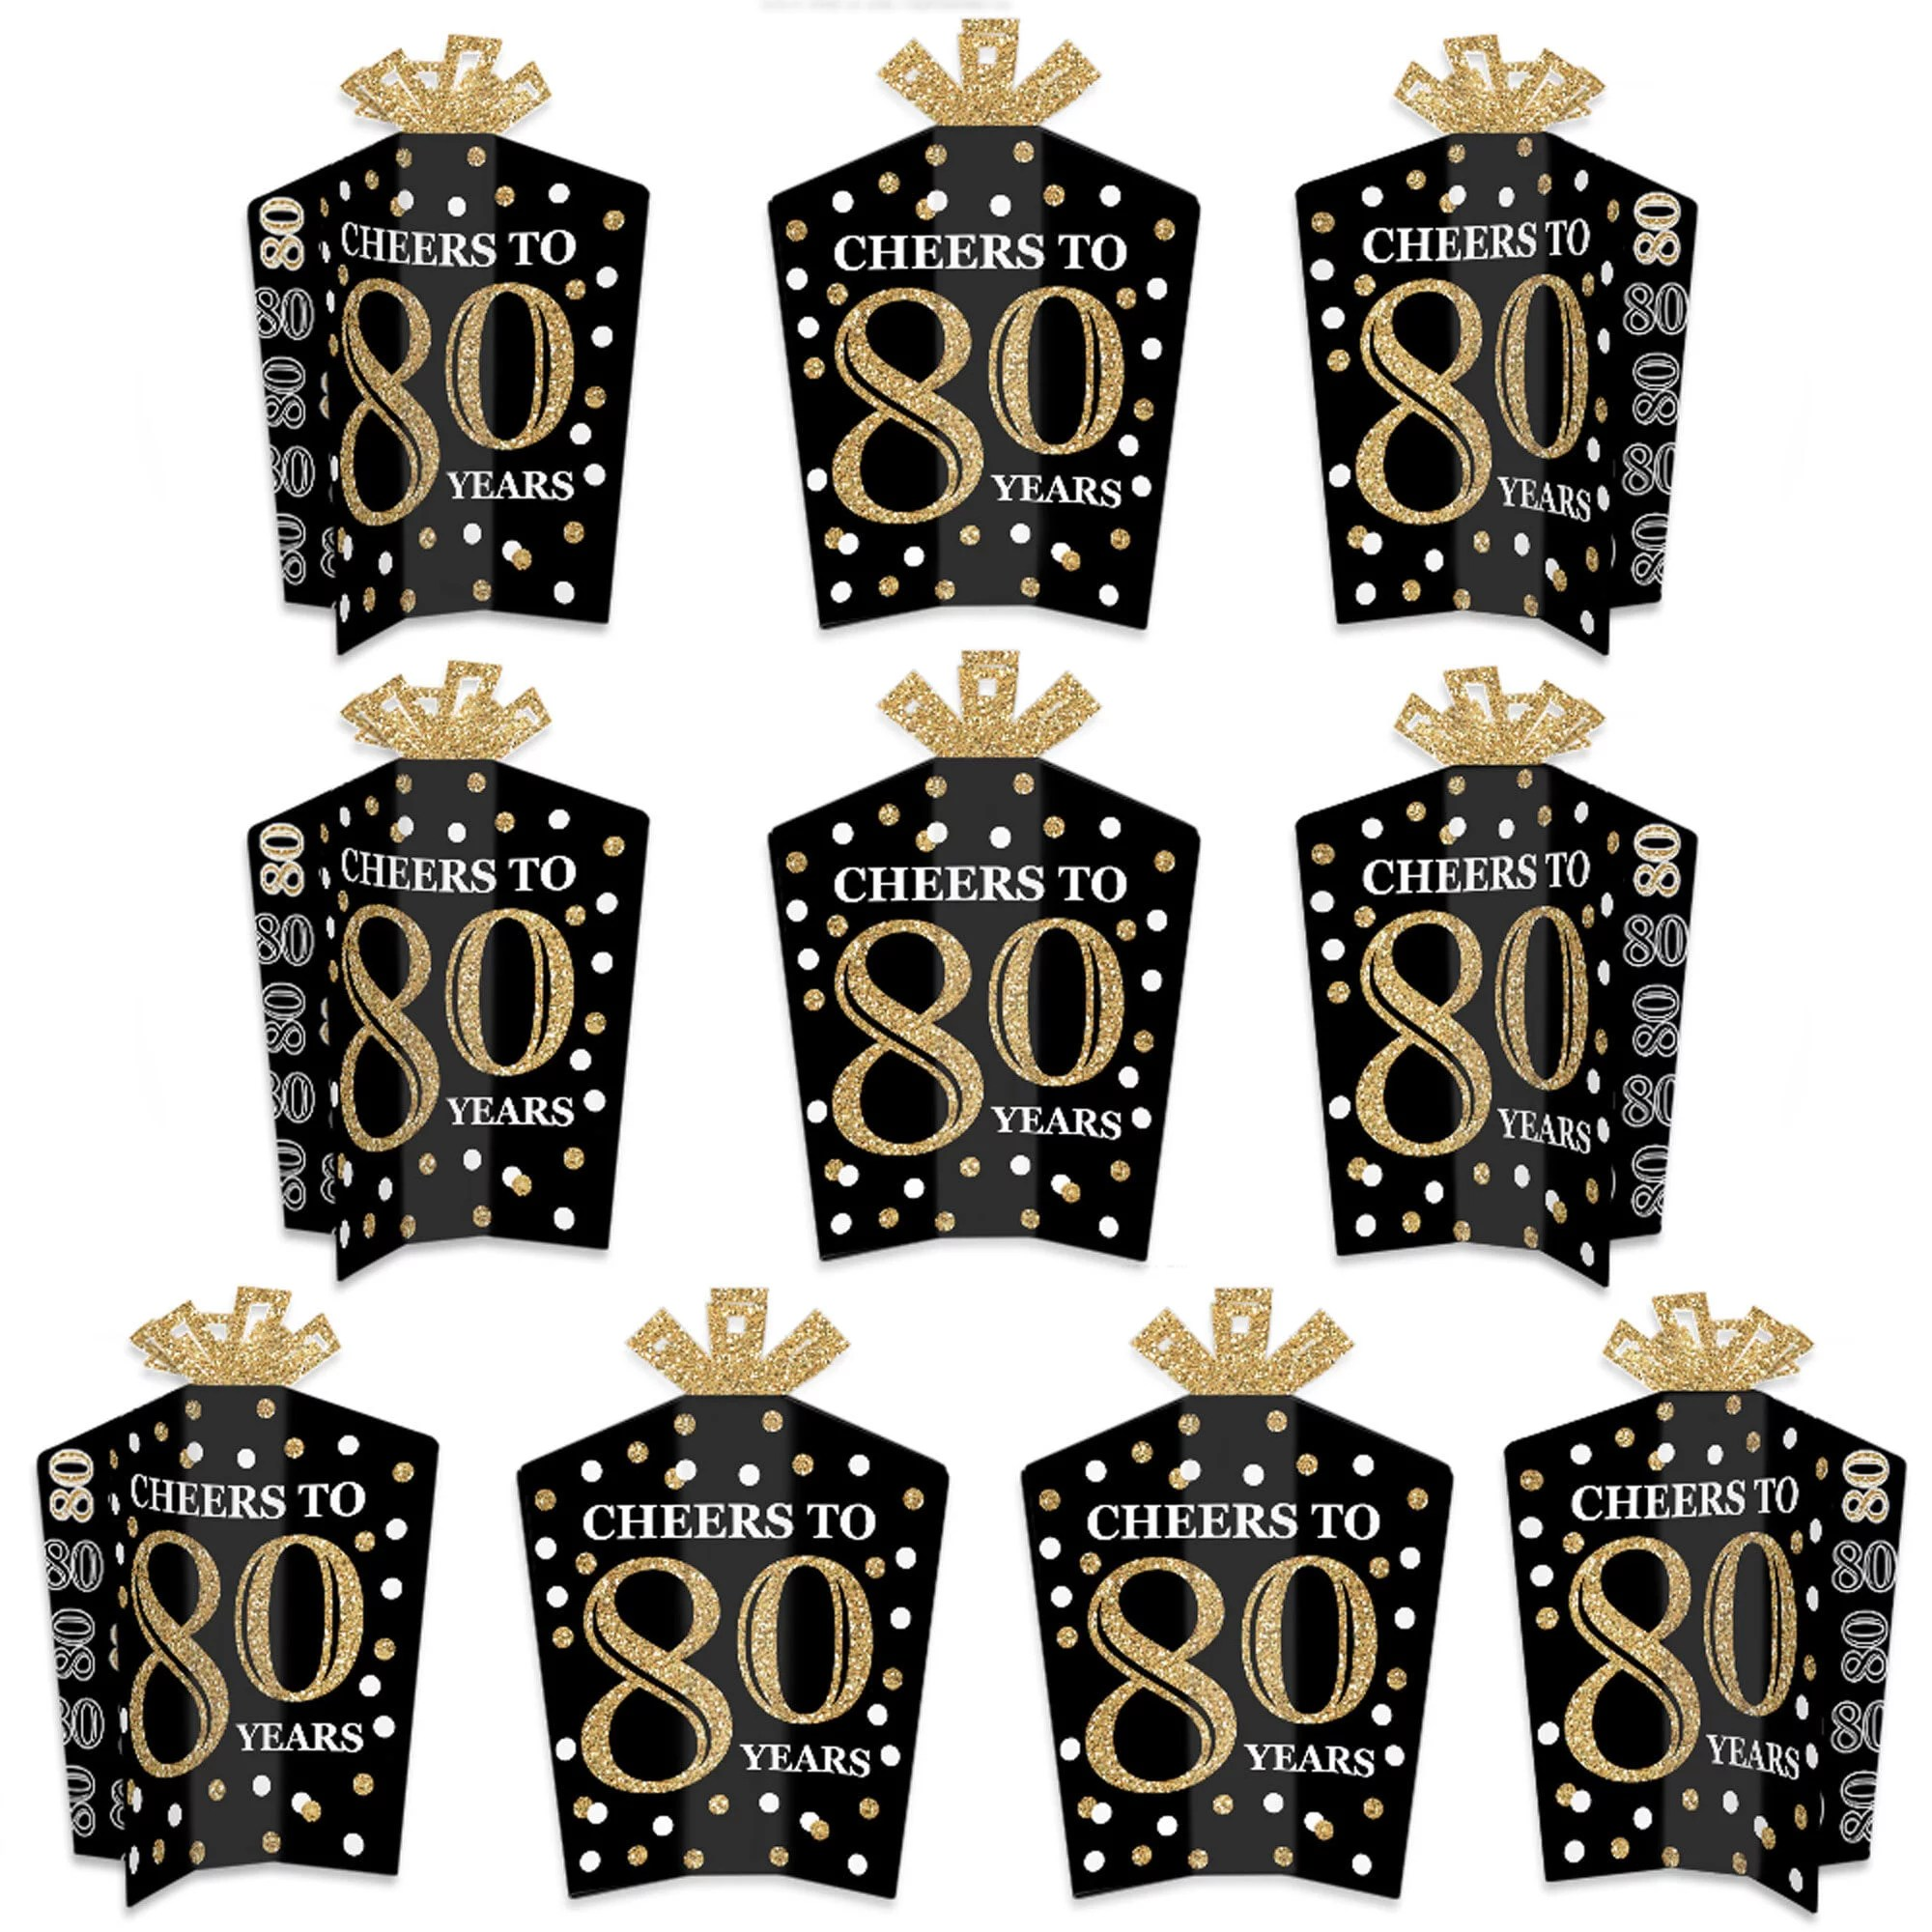 Adult 80th Birthday Gold Table Decorations Birthday Party Fold And Flare Centerpieces 10 Count Walmart Com Walmart Com